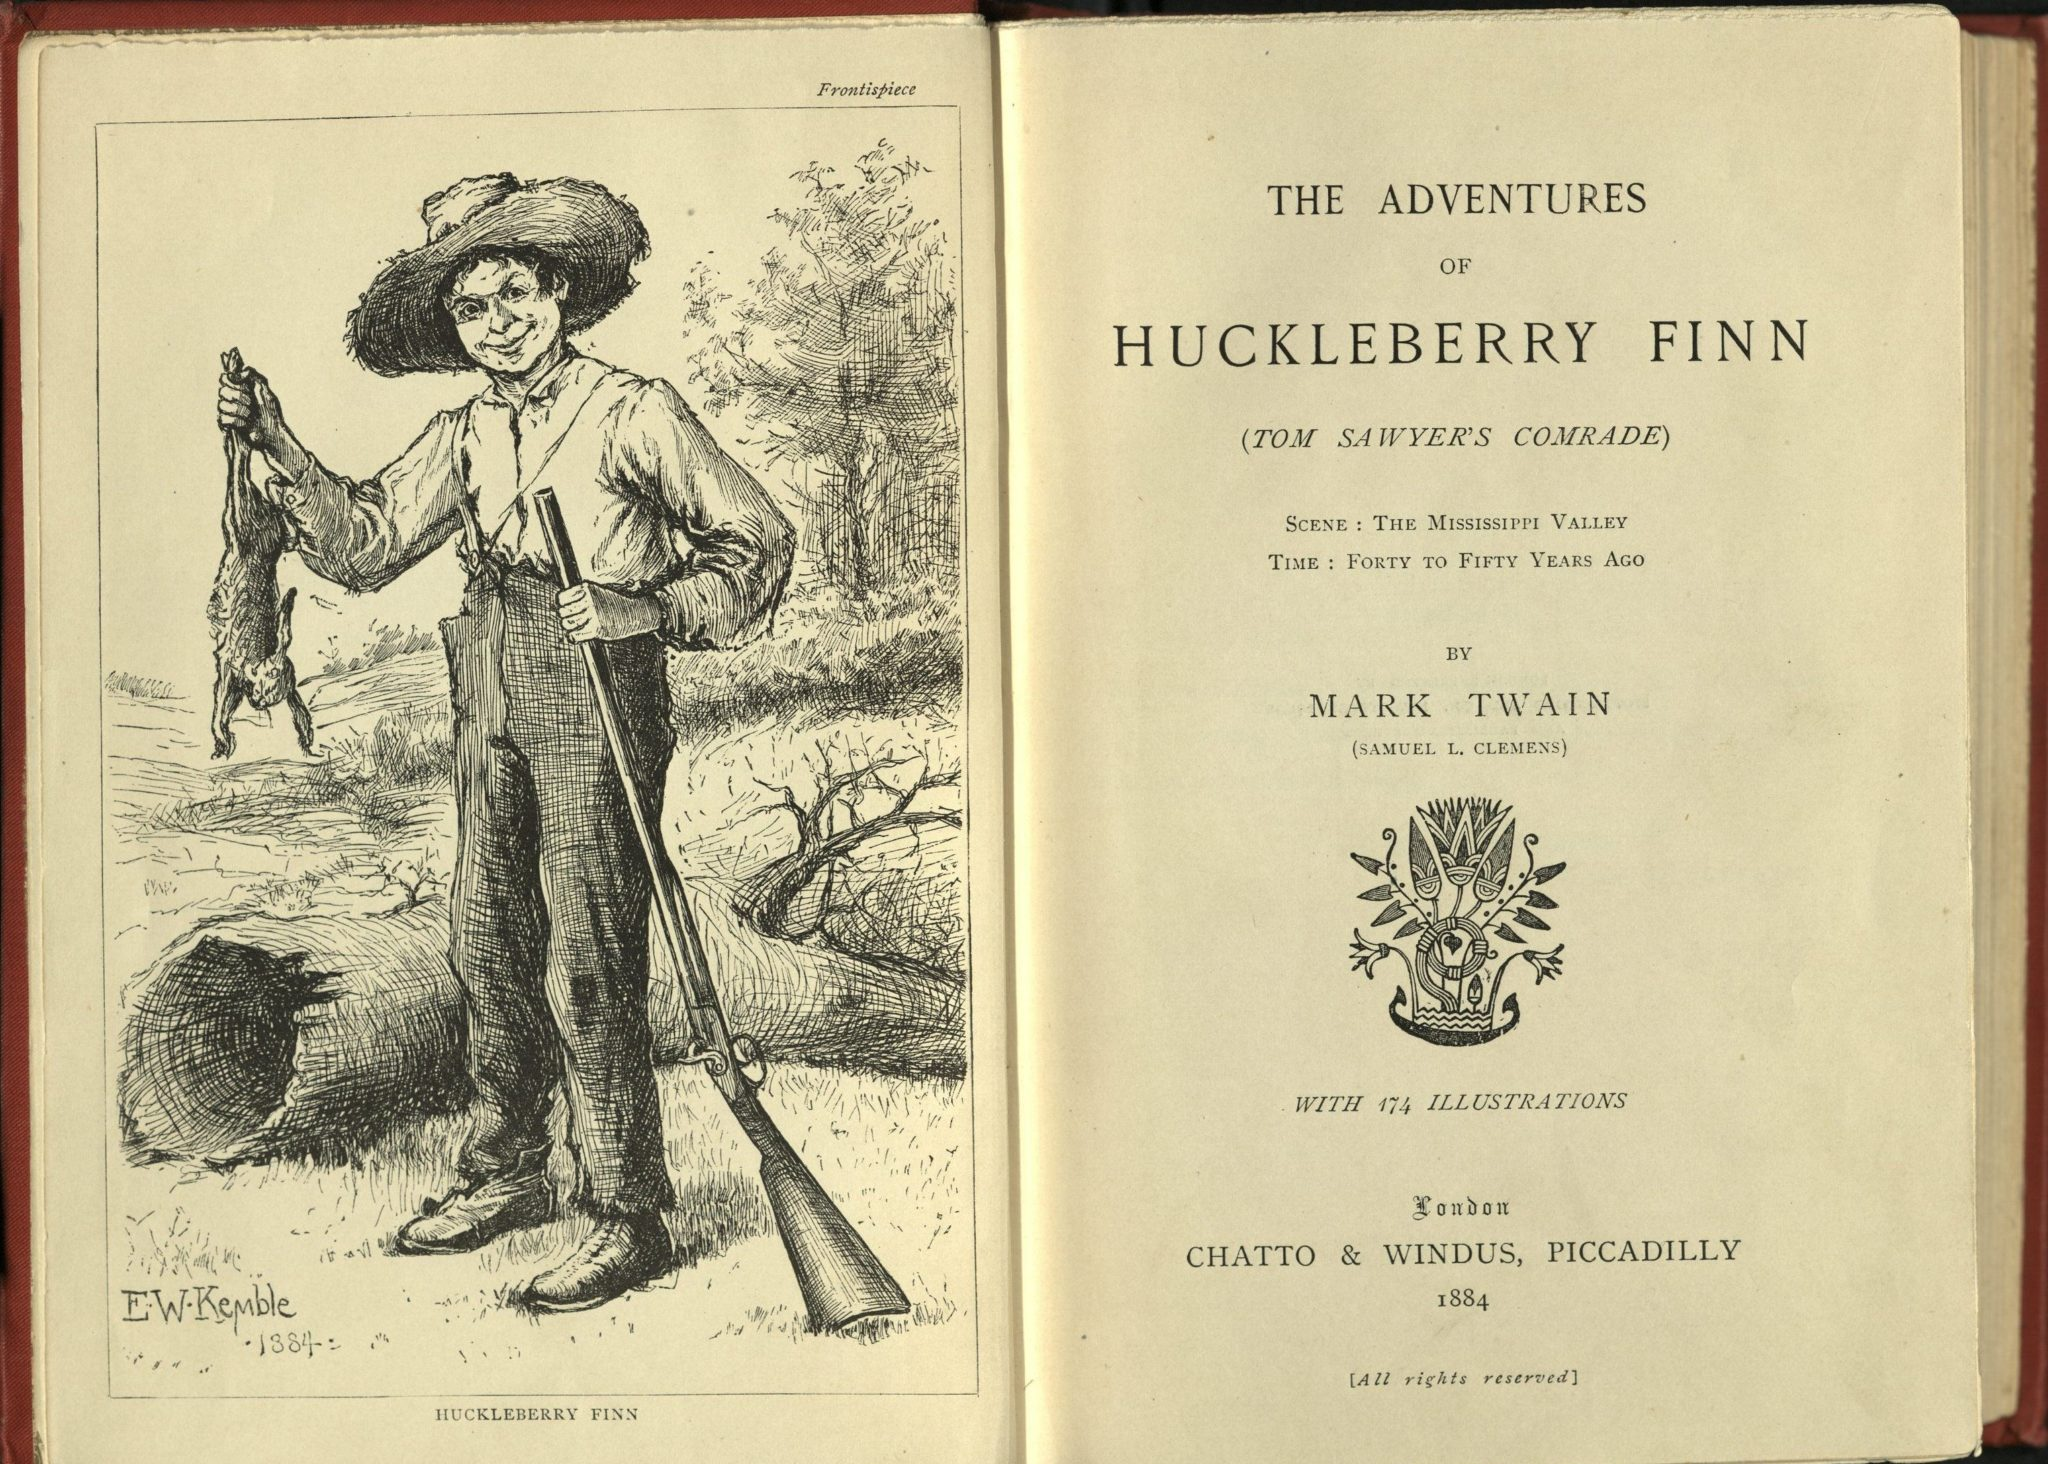 Huckleberry finn term paper